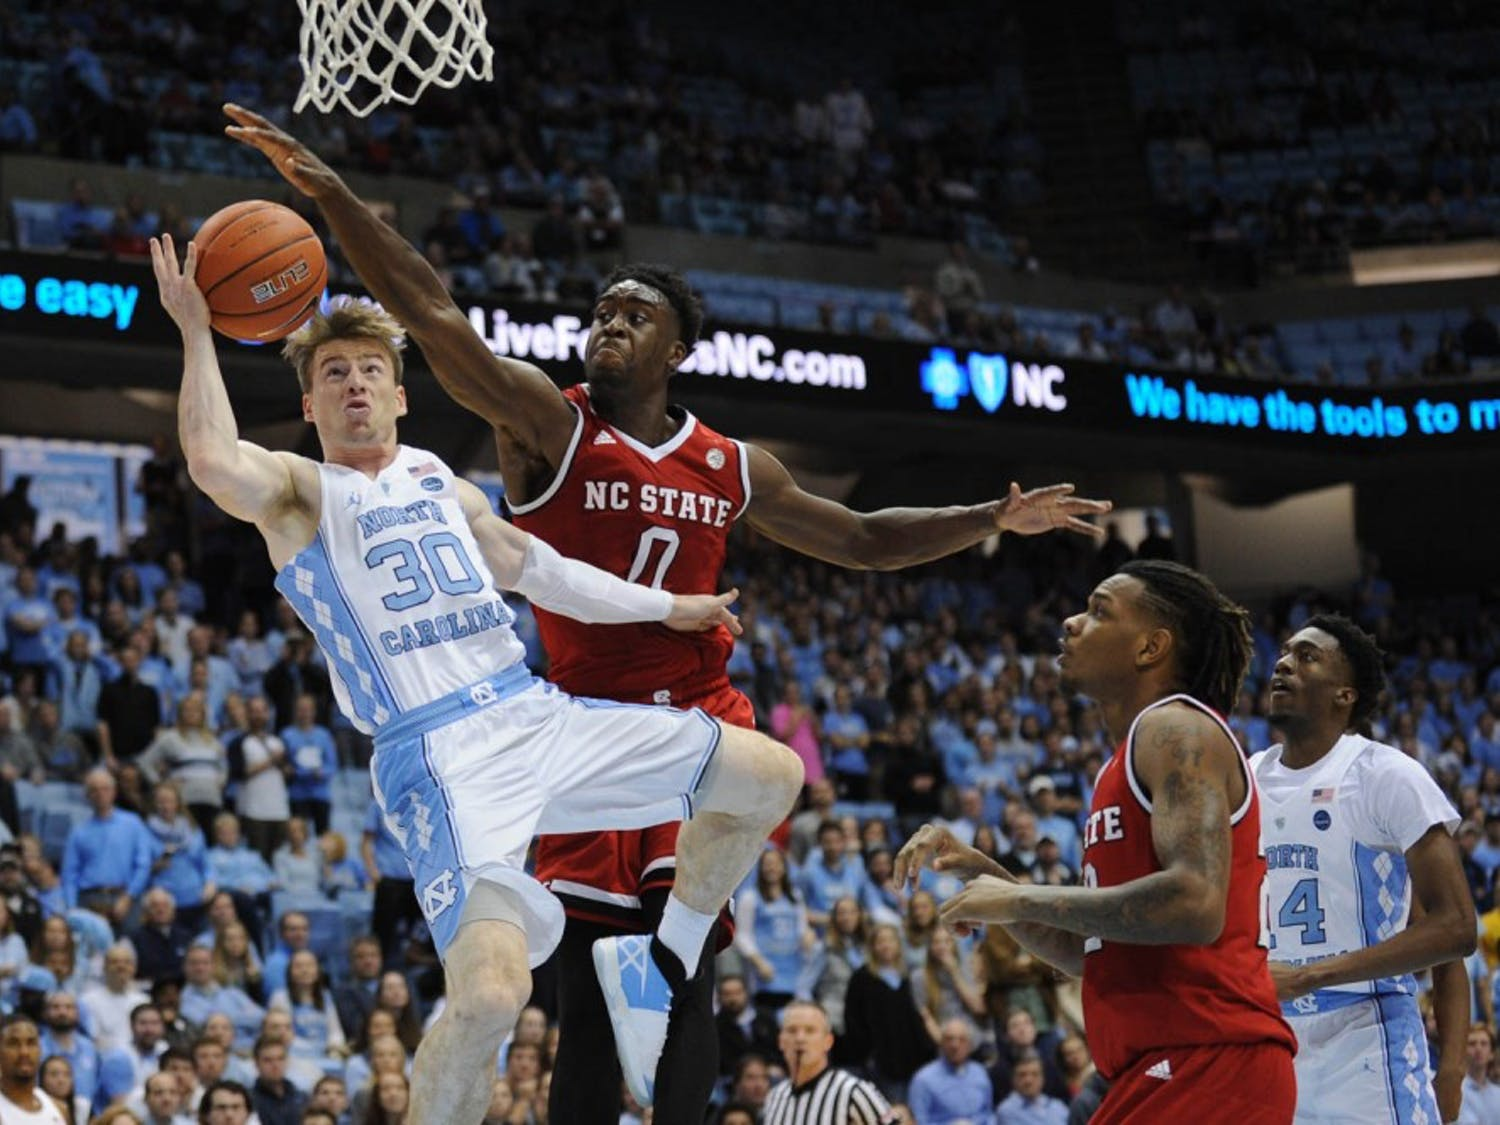 The Tar Heels defeated N.C. State 107-56 Sunday afternoon in the Dean Smith Center.